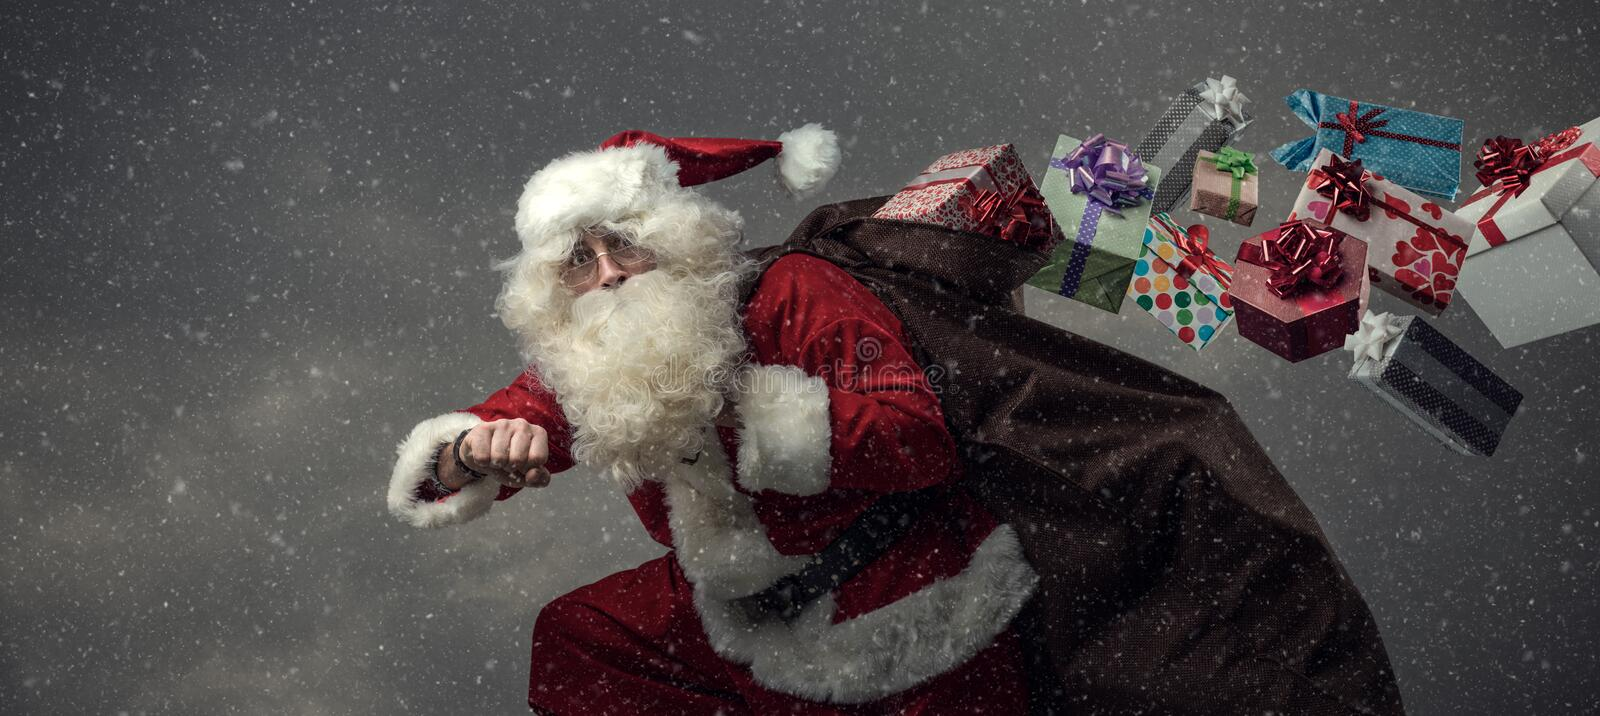 Santa Claus running and delivering gifts royalty free stock image